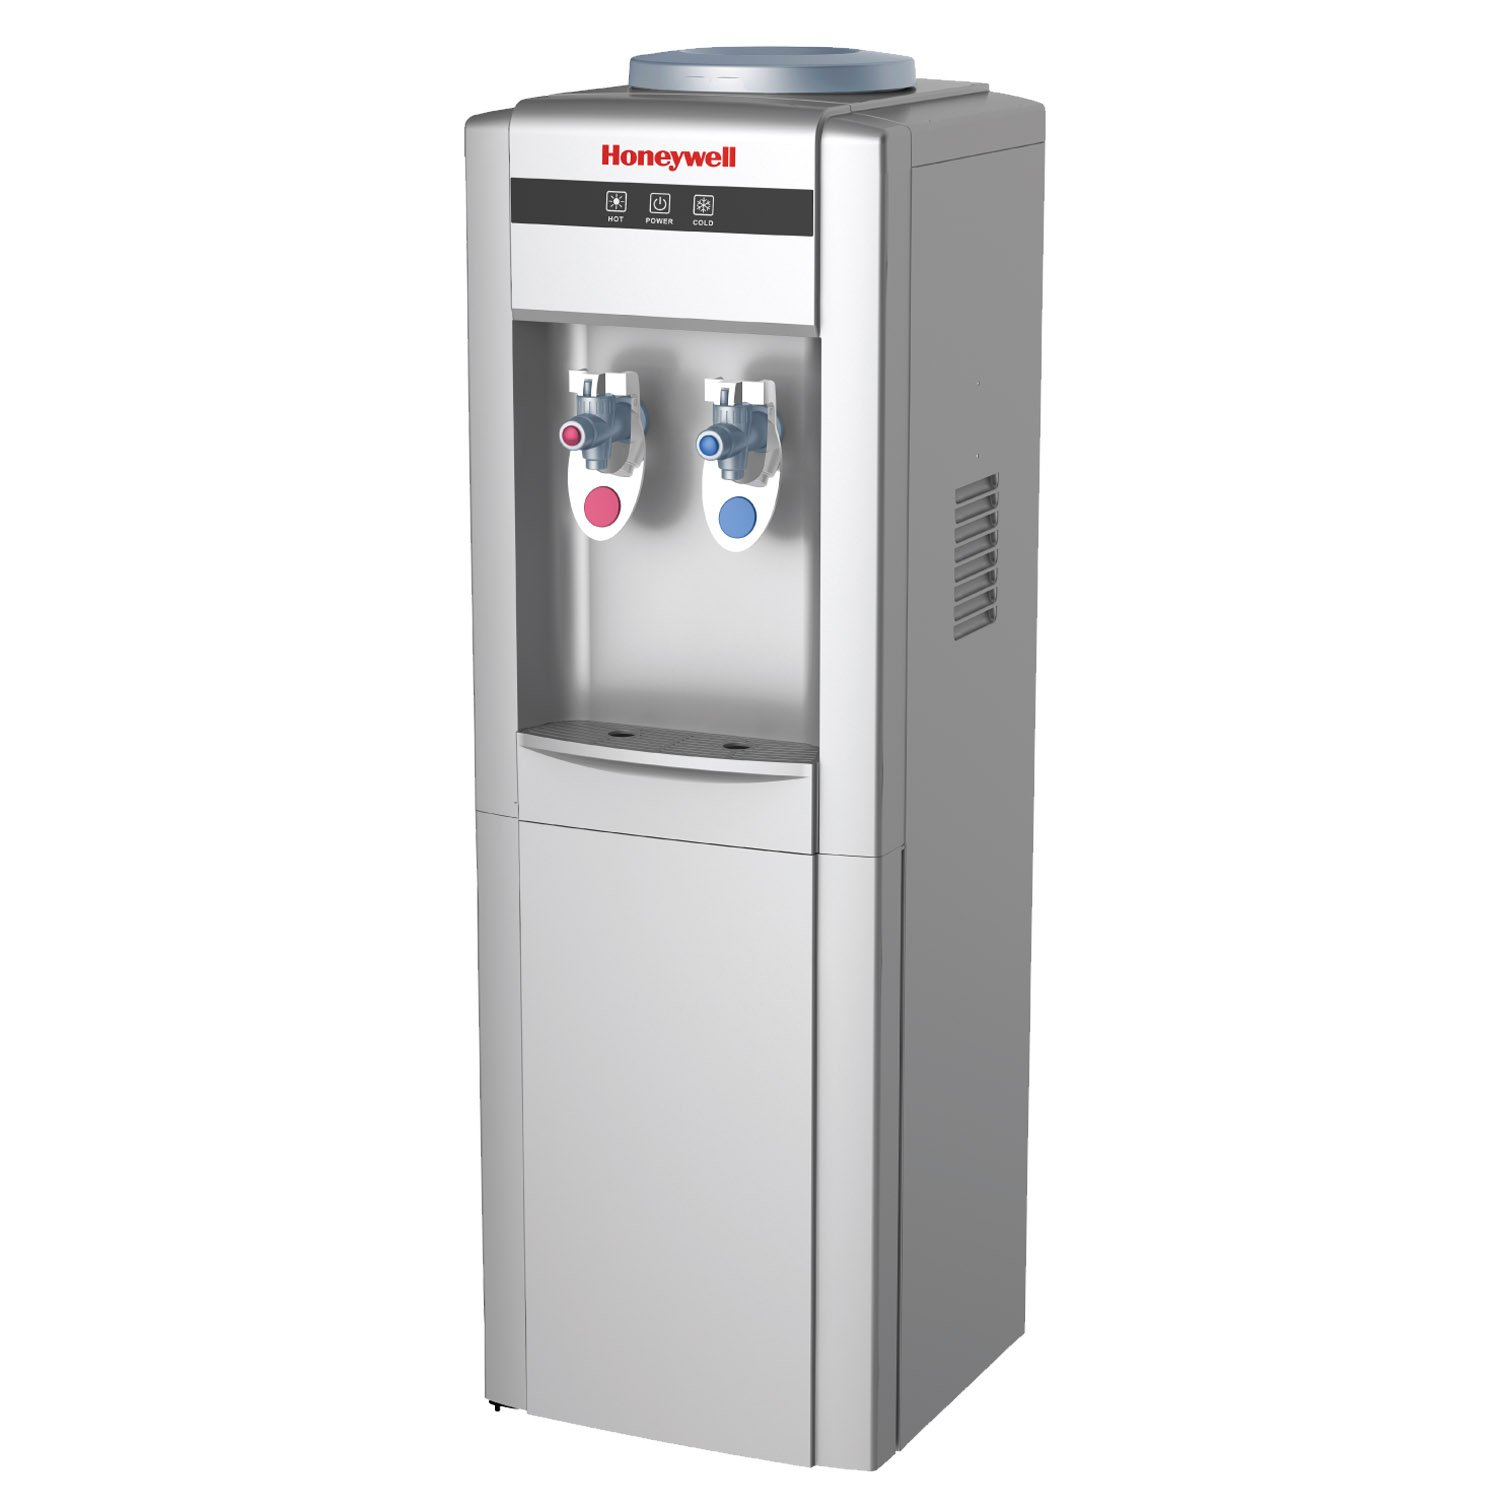 Refrigerated Water Dispenser Honeywell Hwb1052s Cabinet Freestanding Hot And Cold Water